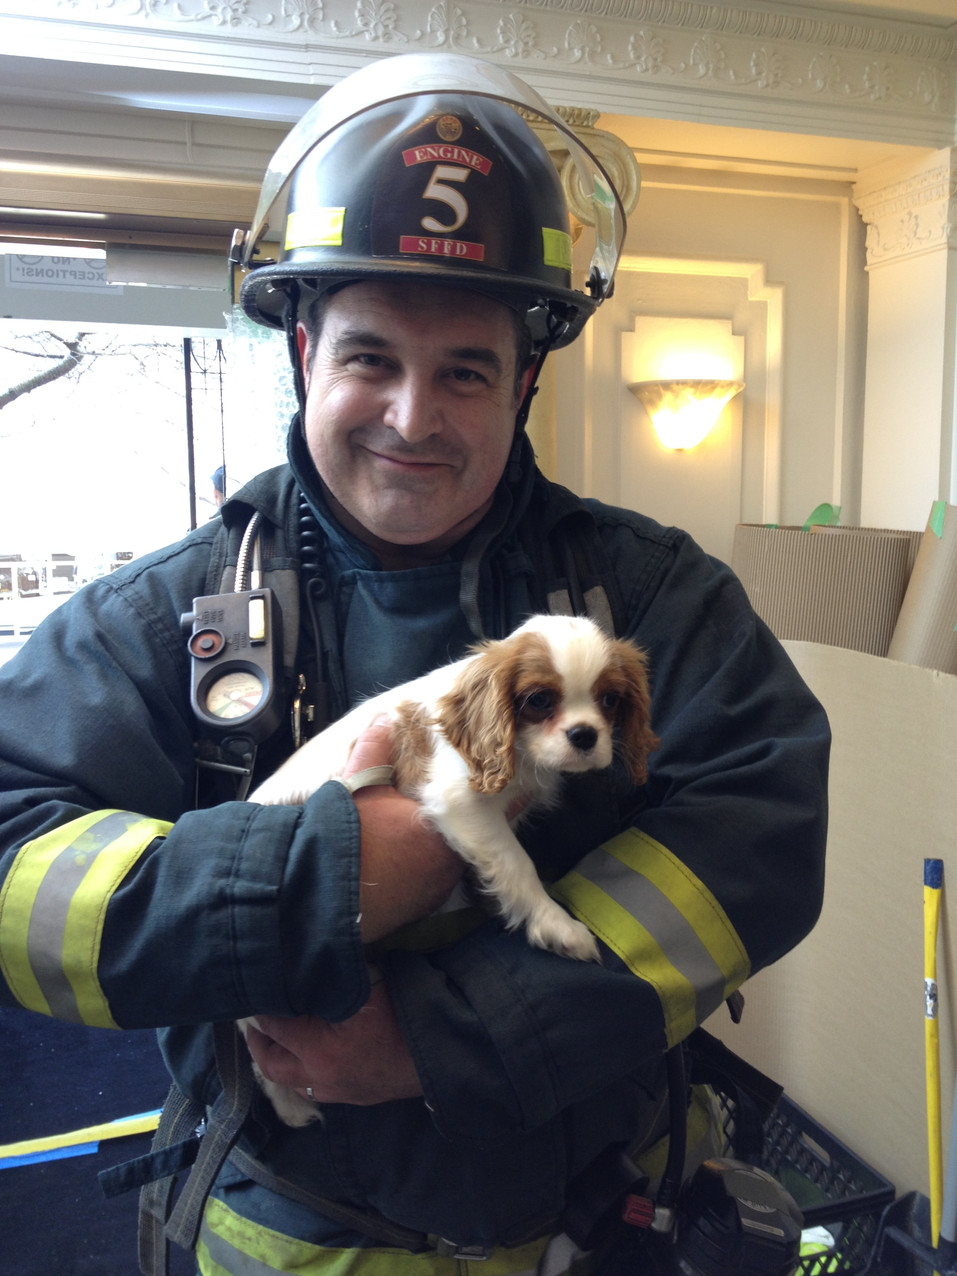 Fireman and his puppy. Calendar coming soon!